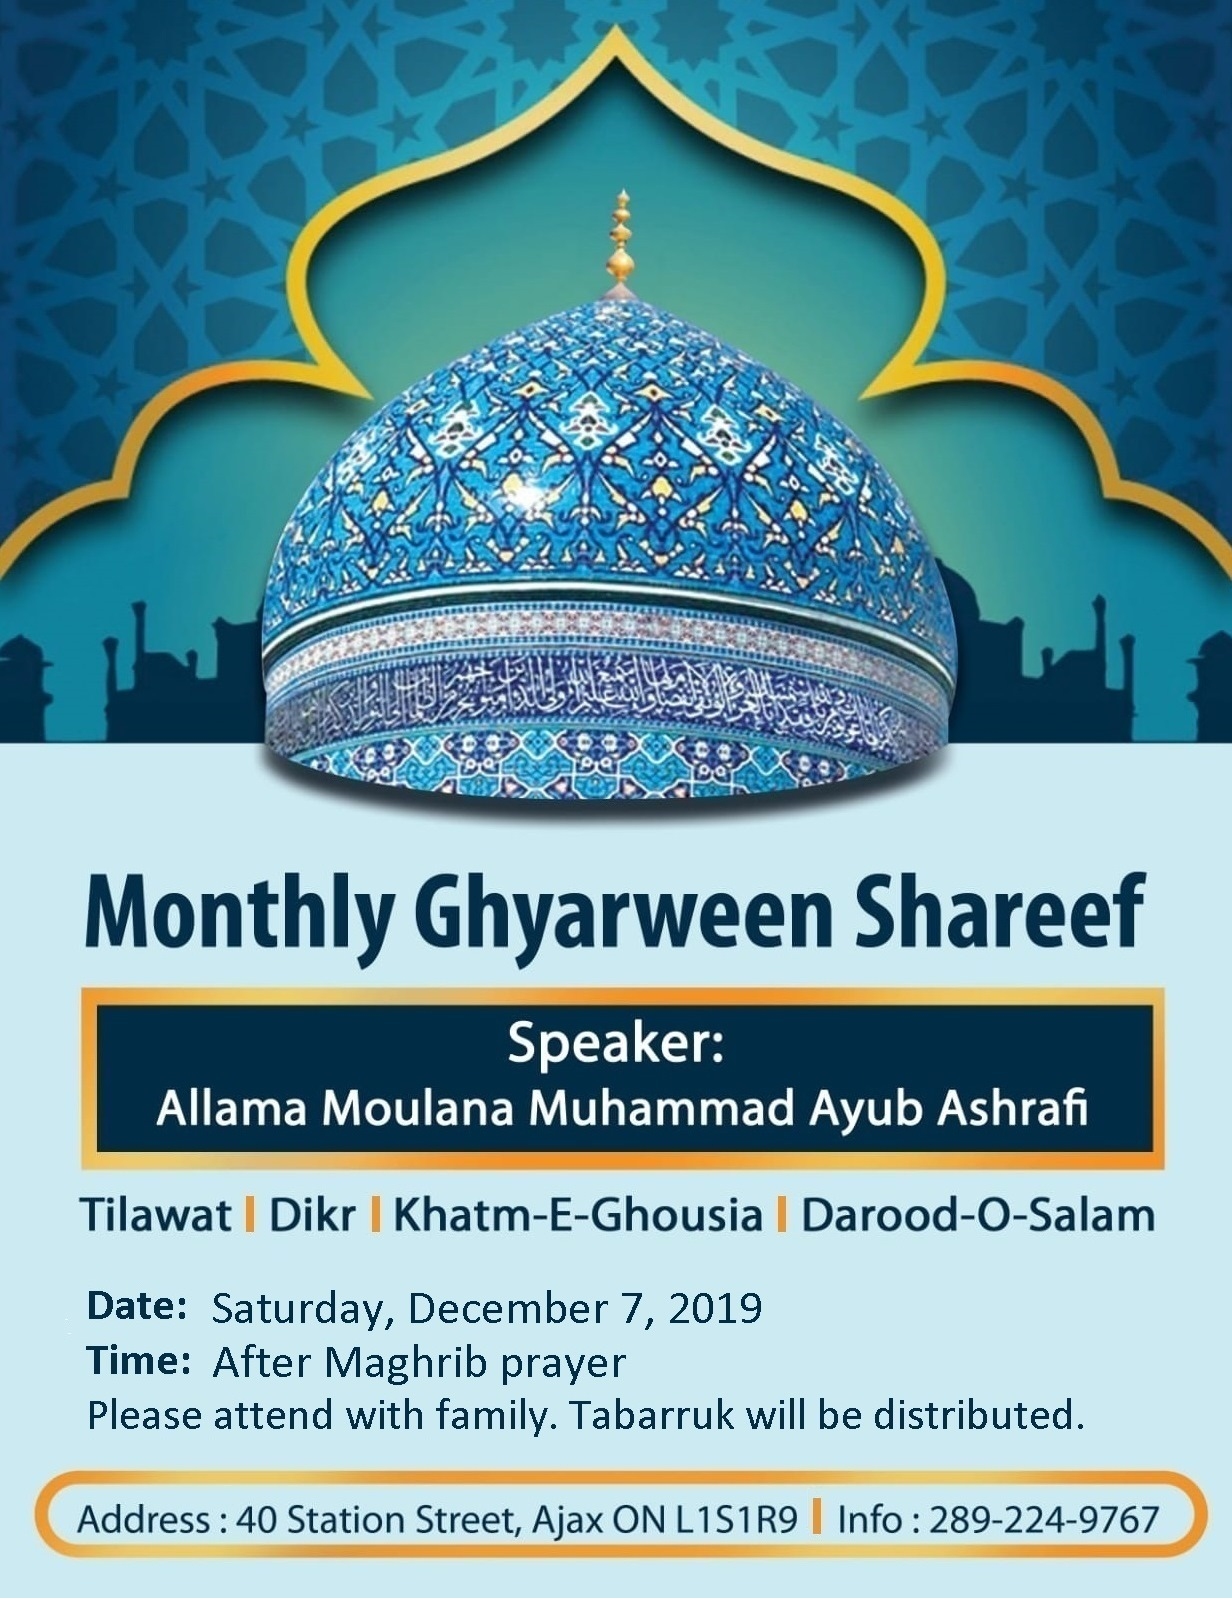 Bari Ghyarween Shareef – Saturday December 7 after Maghrib prayer